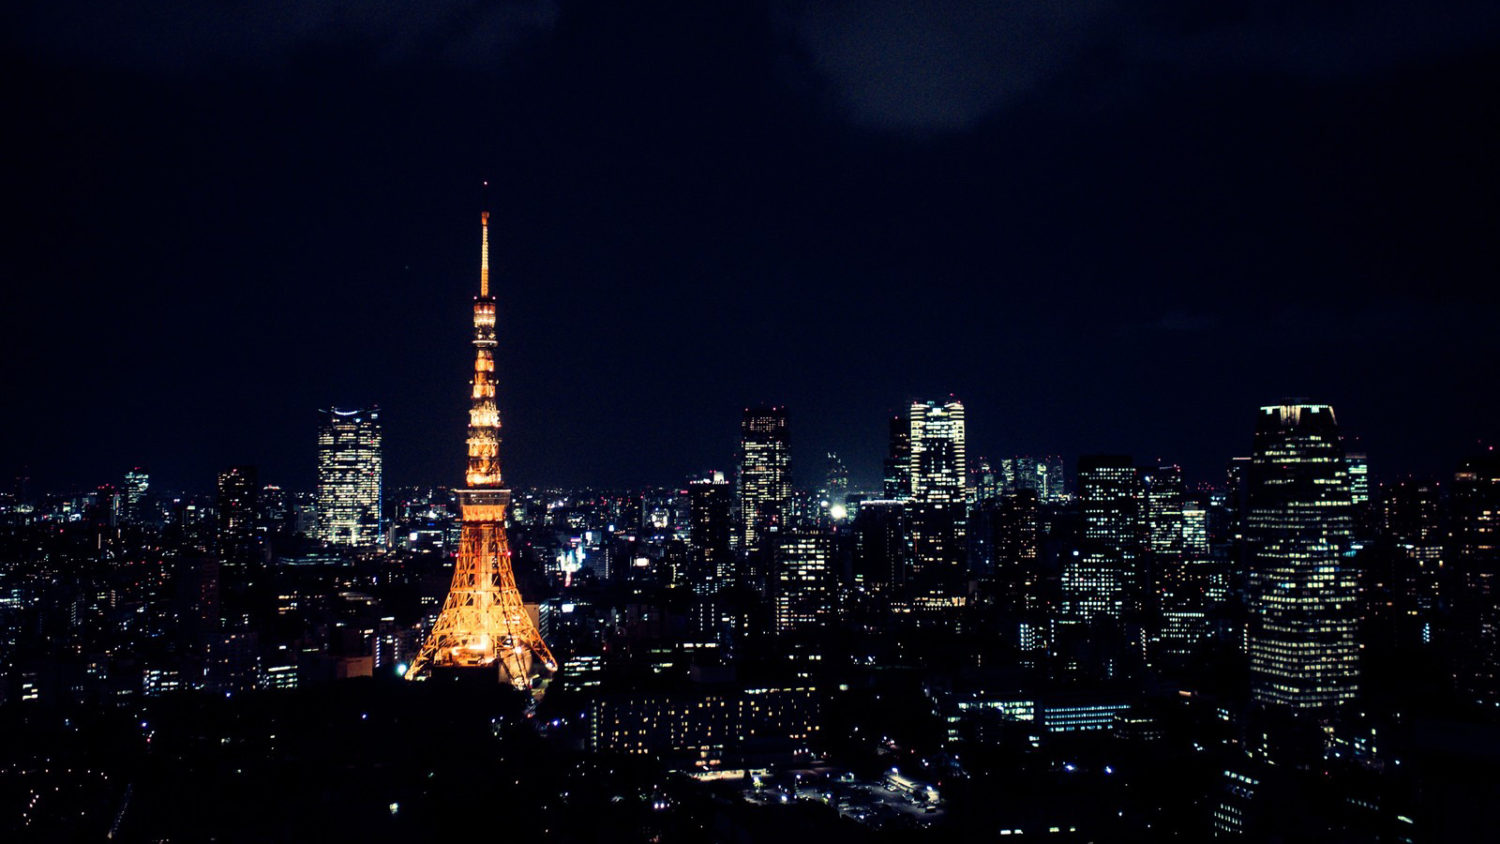 Aerial night view of Tokyo with an illuminated Tokyo Tower.